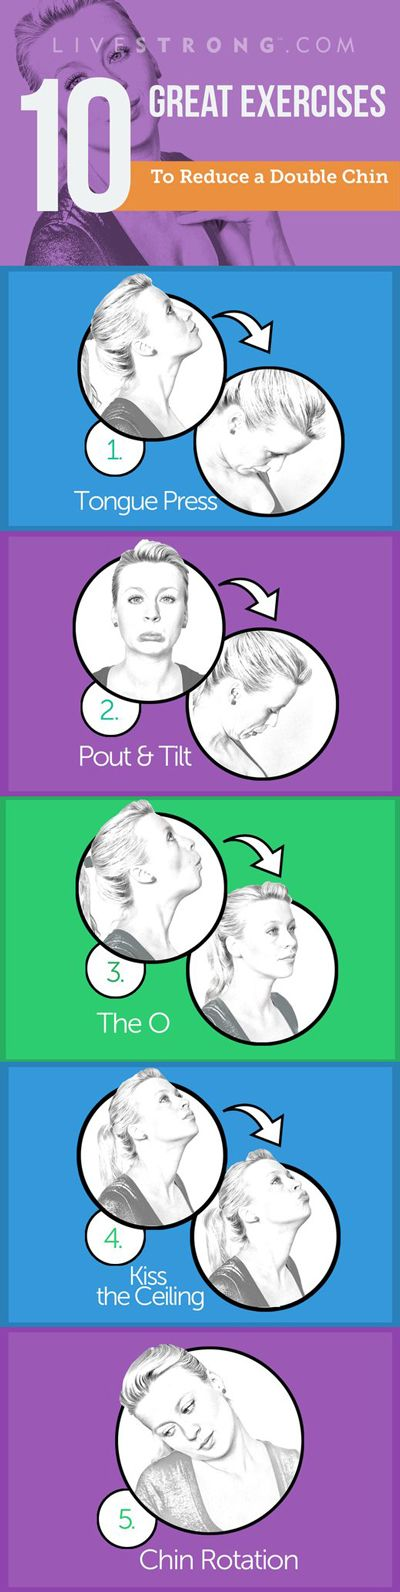 The 10 Best Exercises to Reduce a Double Chin: http://lvstrng.com/1K70JVr